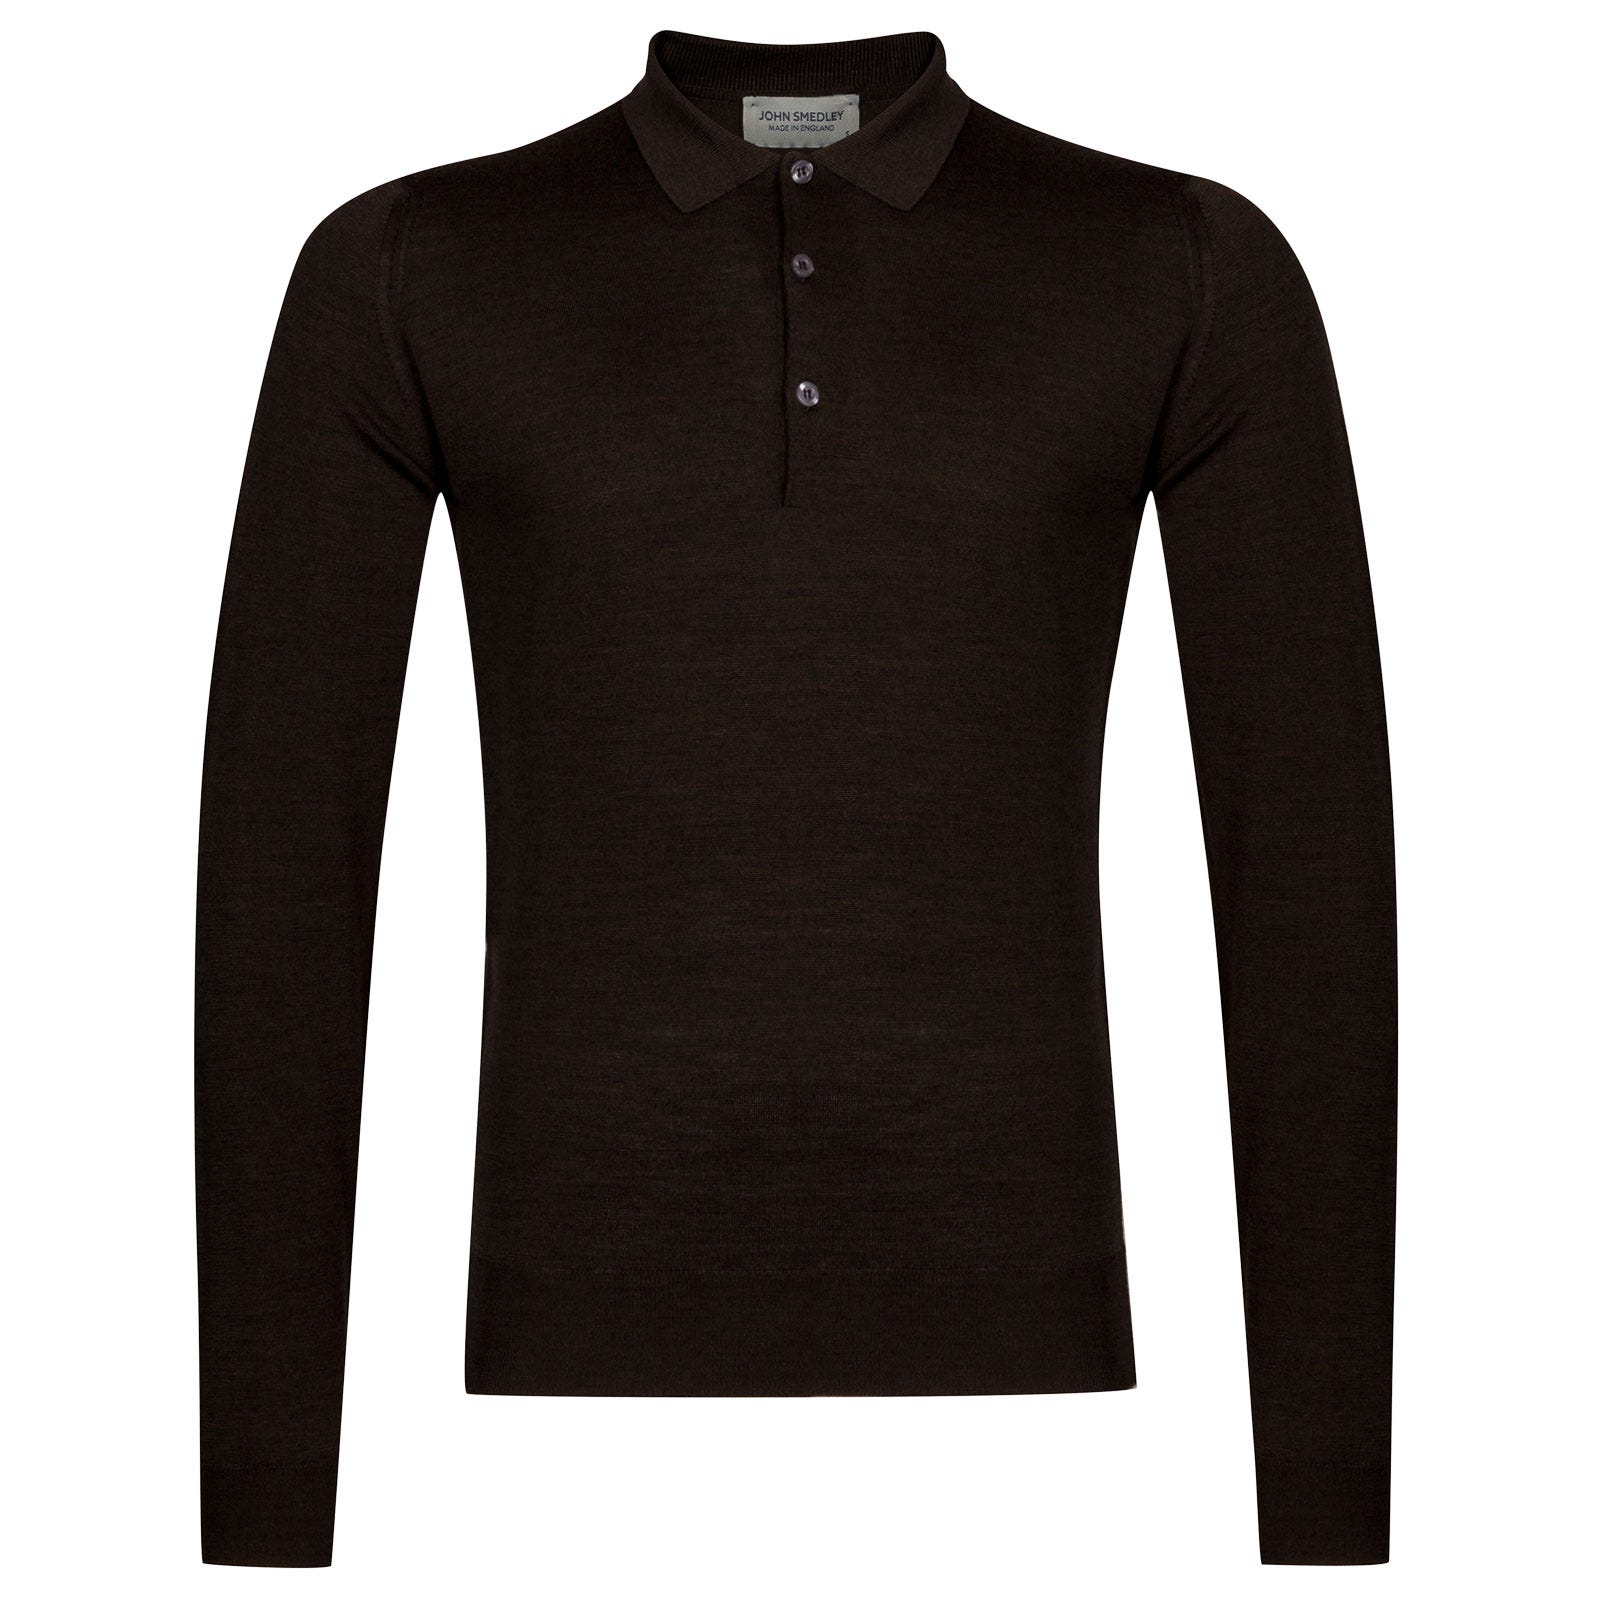 John Smedley belper Merino Wool Shirt in Chestnut-XXL